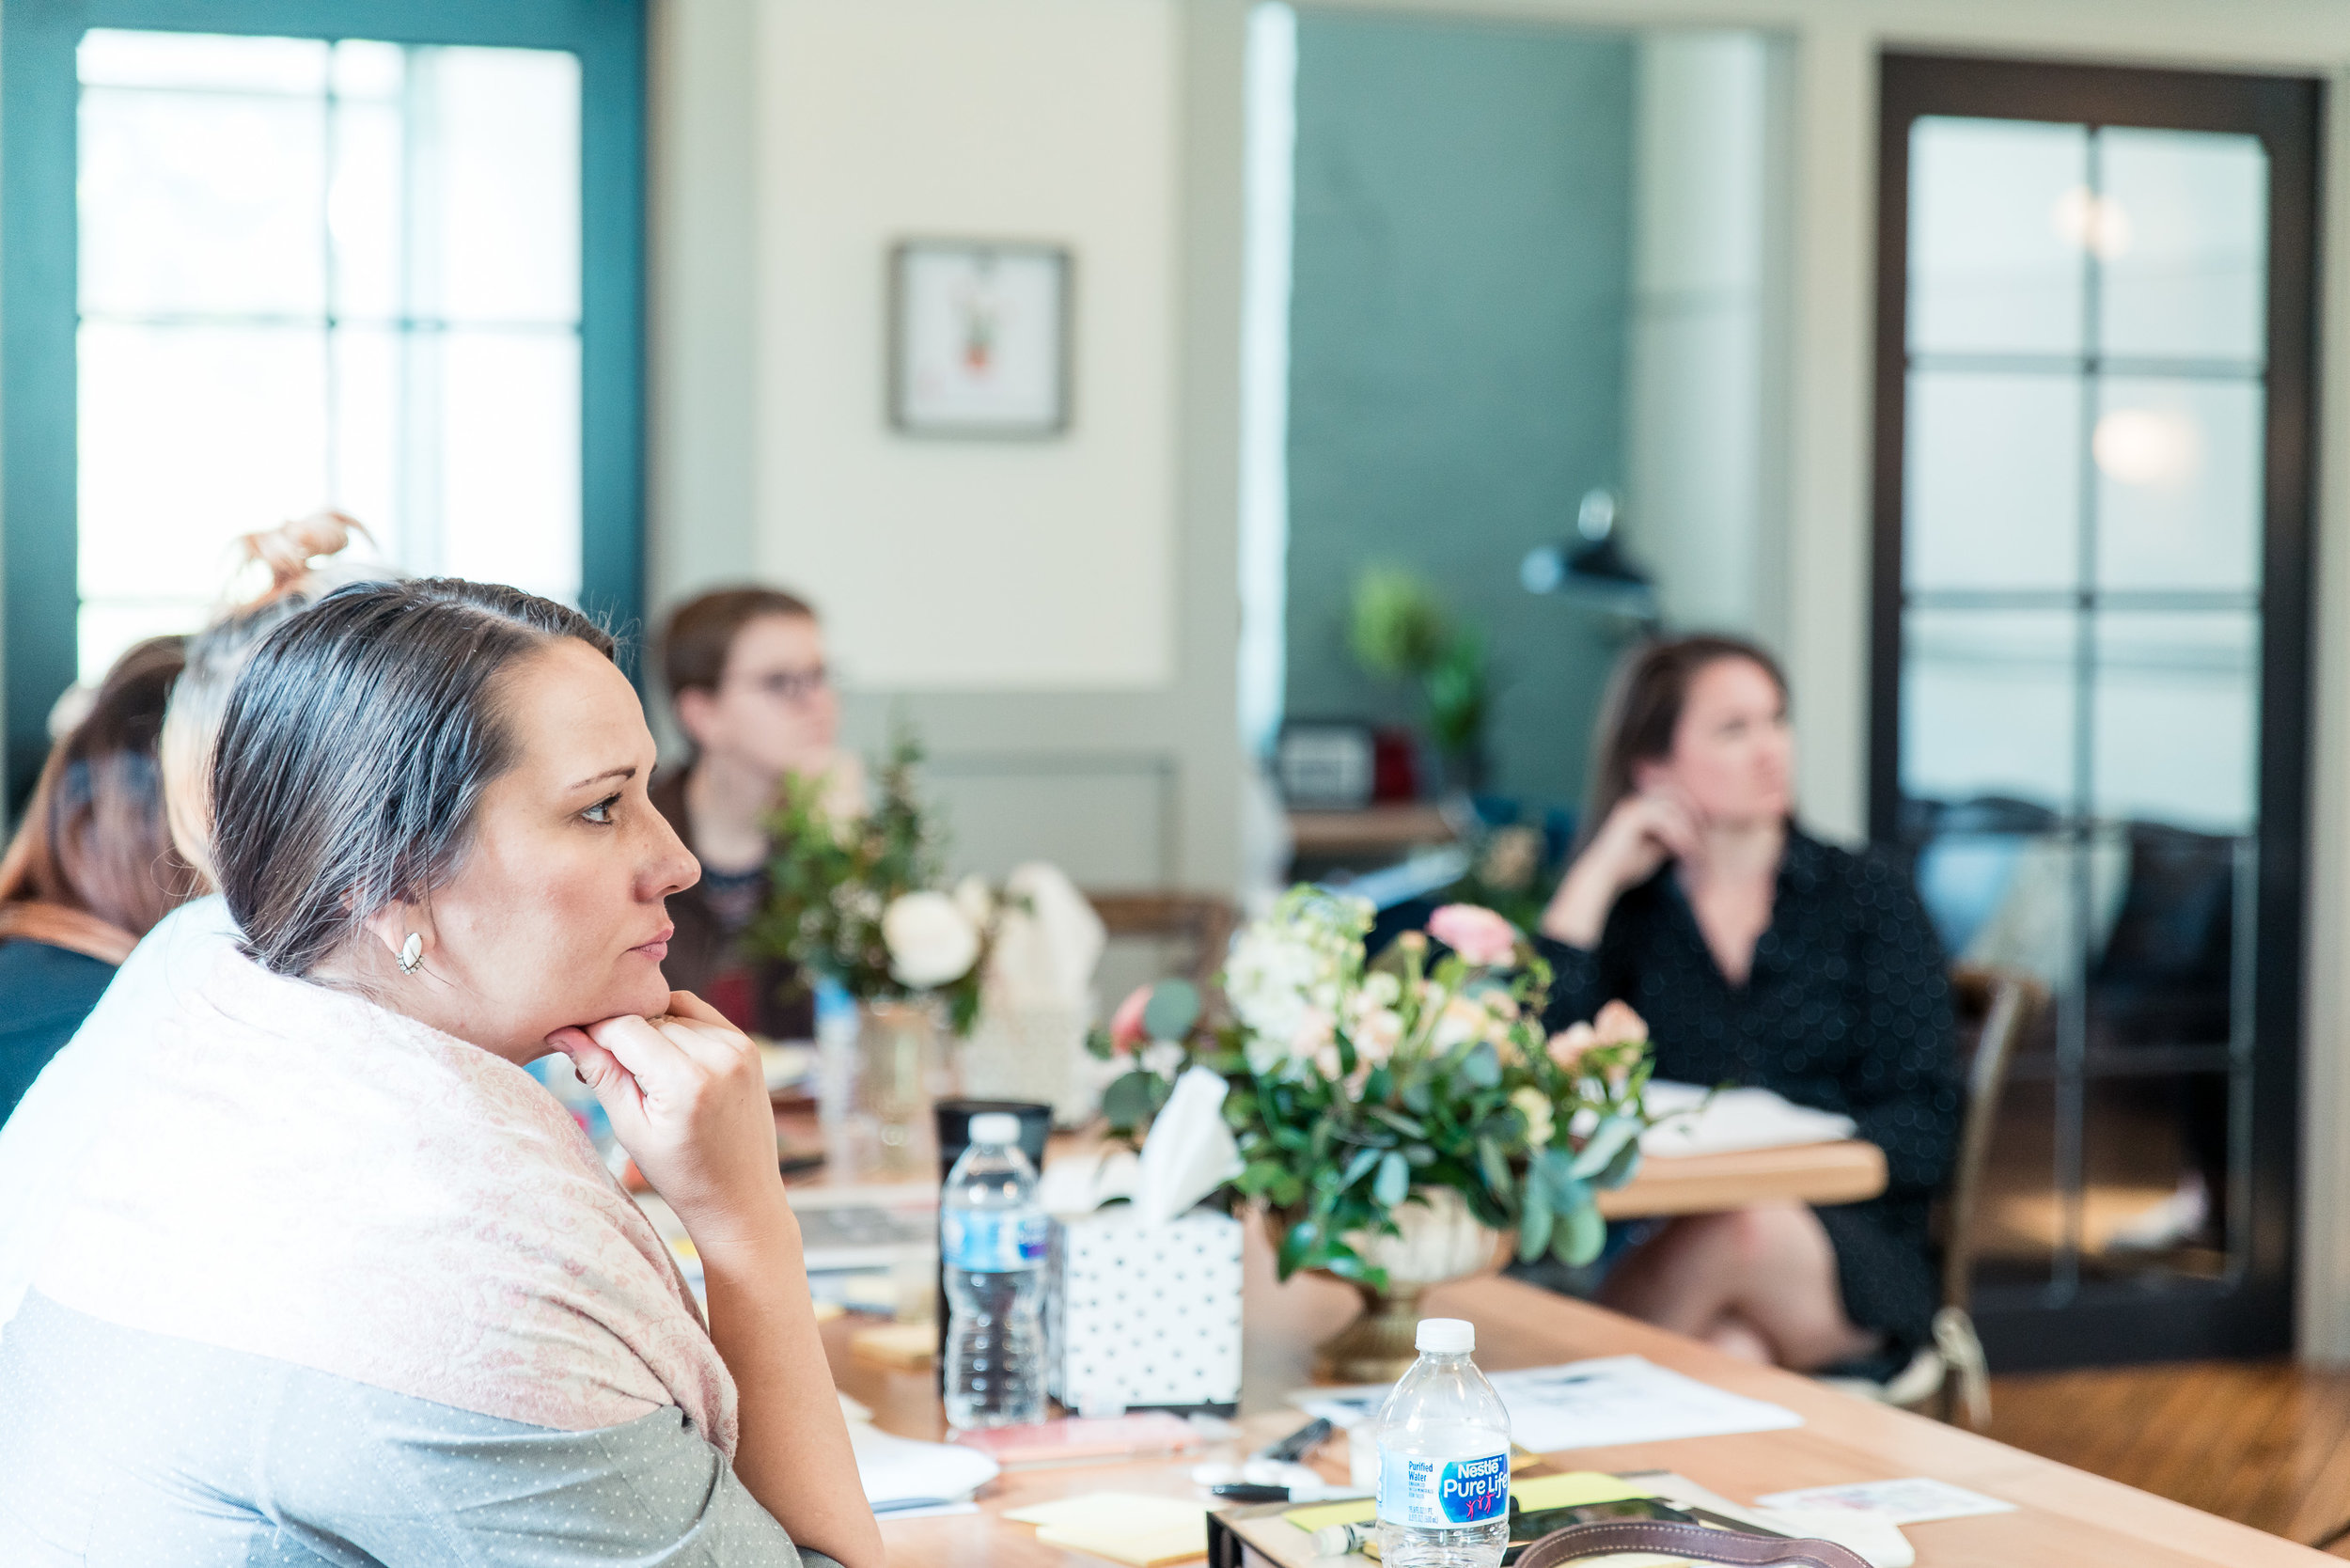 20190410-INSPIRE-business-community-mastermind-day-classes-52.jpg